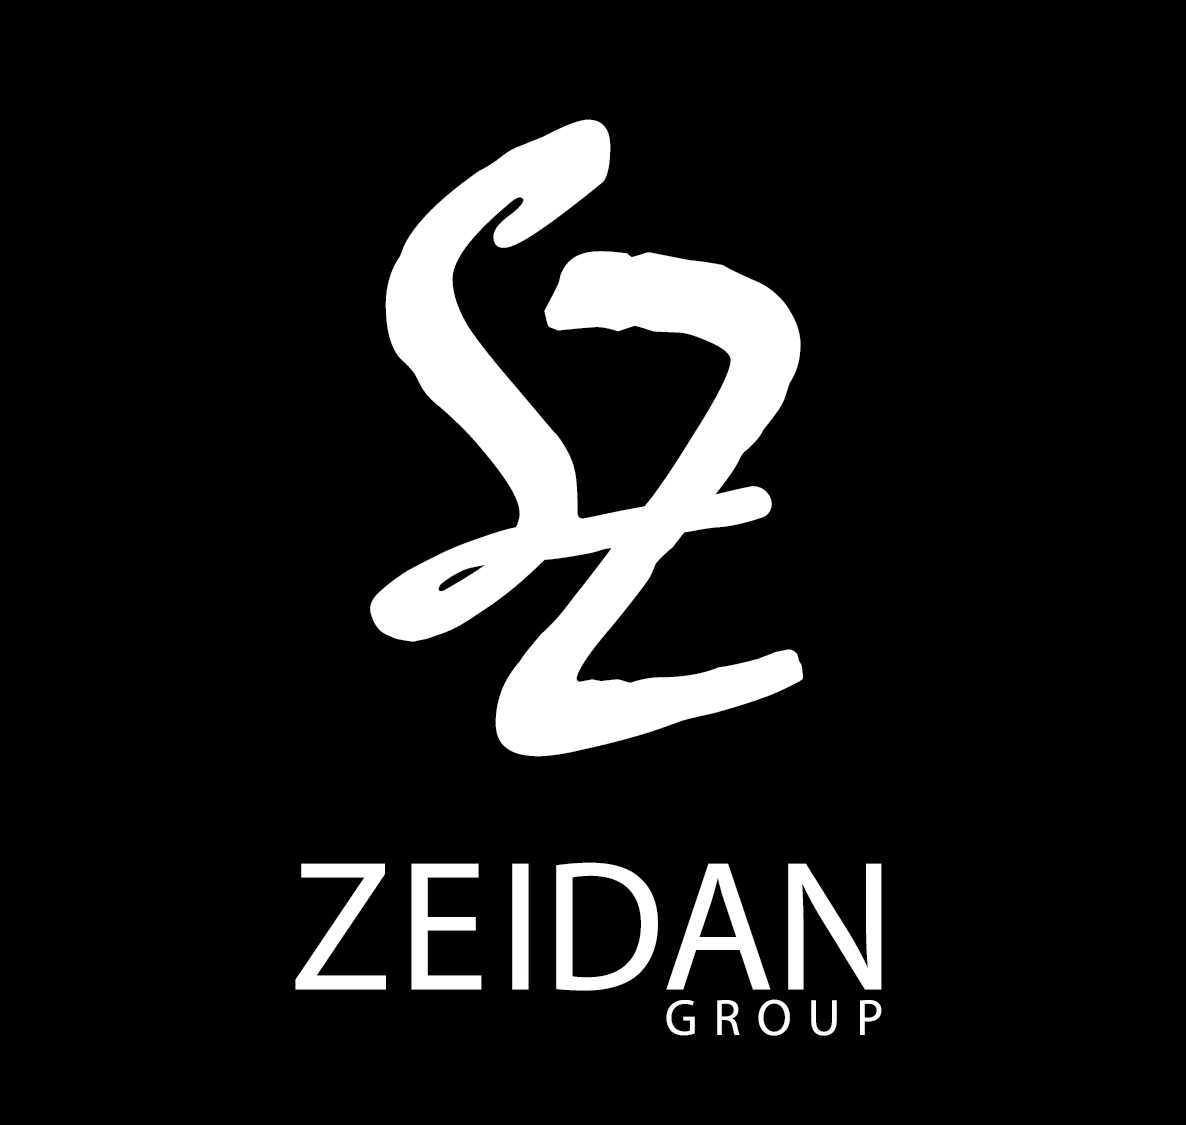 Zeidan Group Aruba